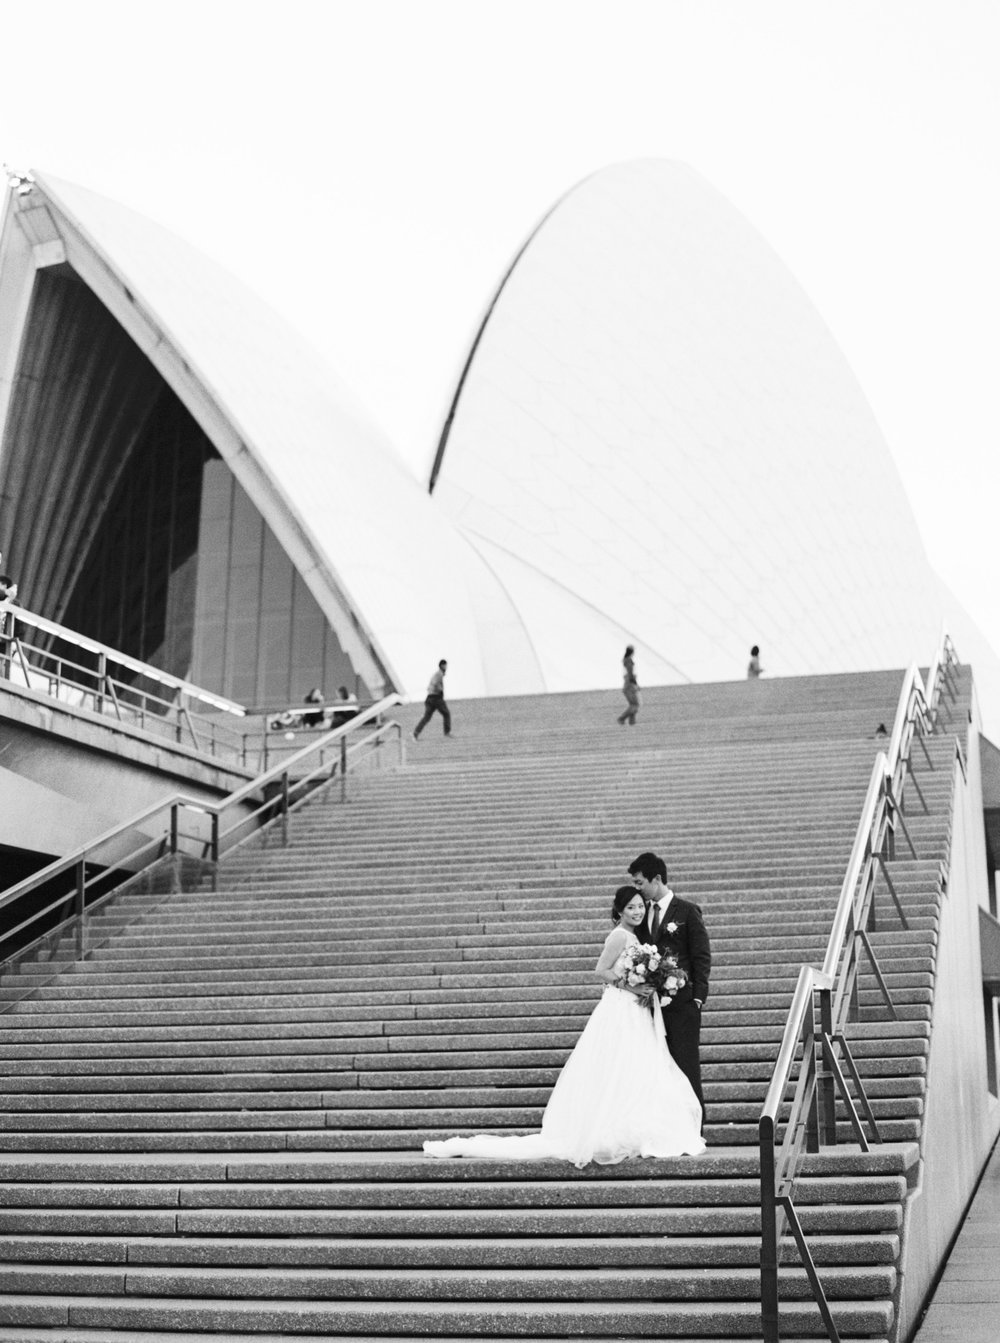 00049- Australia Sydney Wedding Photographer Sheri McMahon.jpg